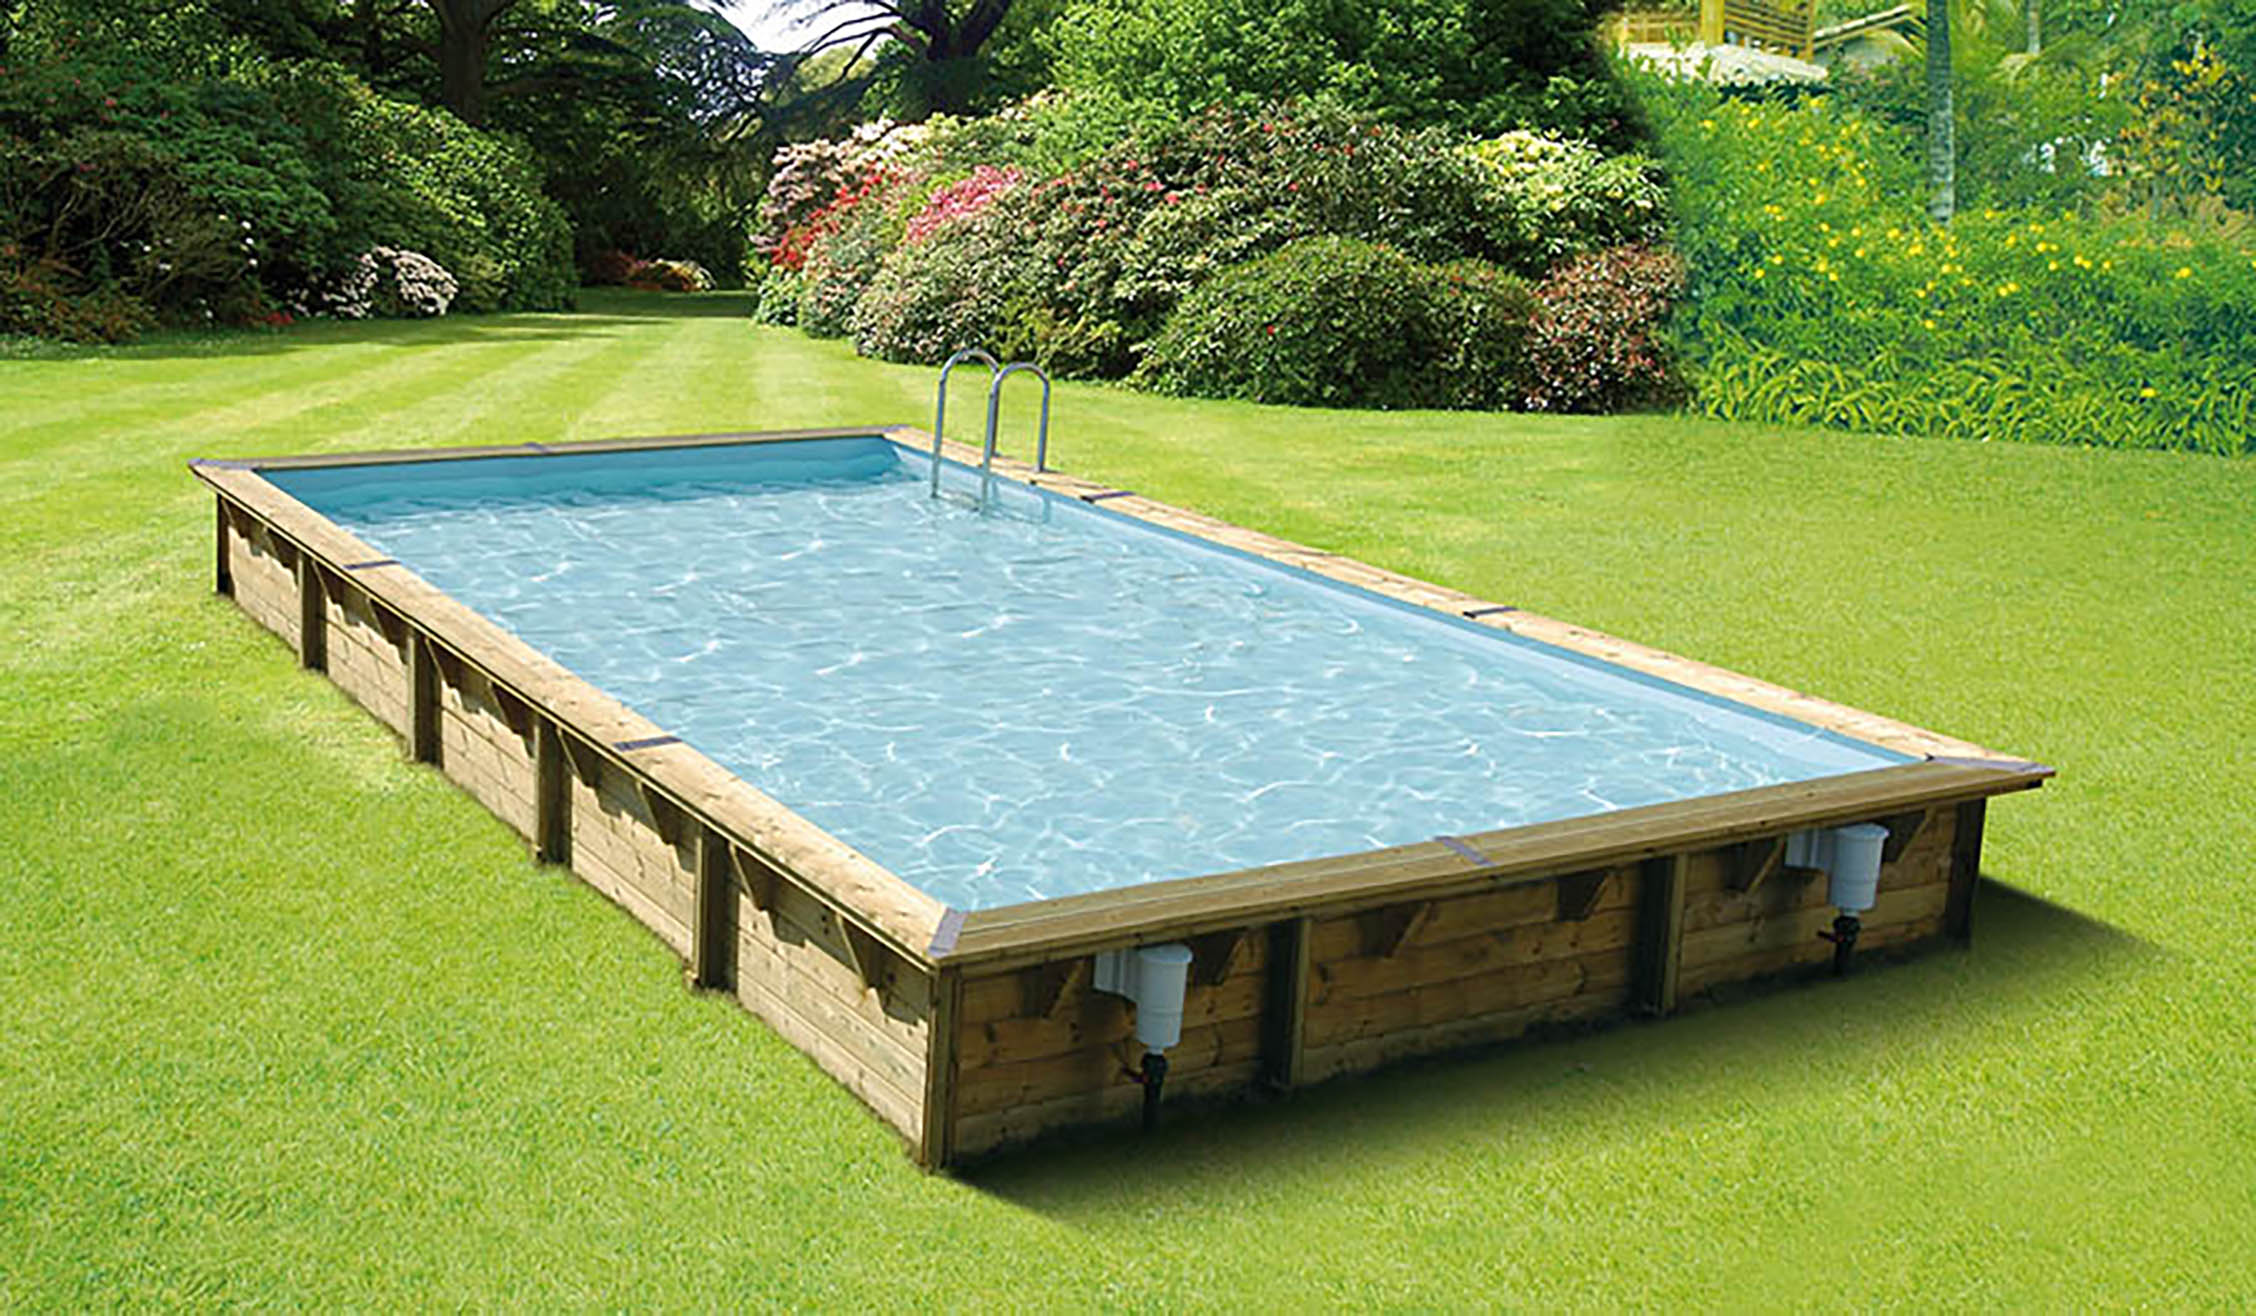 Amenagement piscine bois hors sol id es for Piscine bois en solde